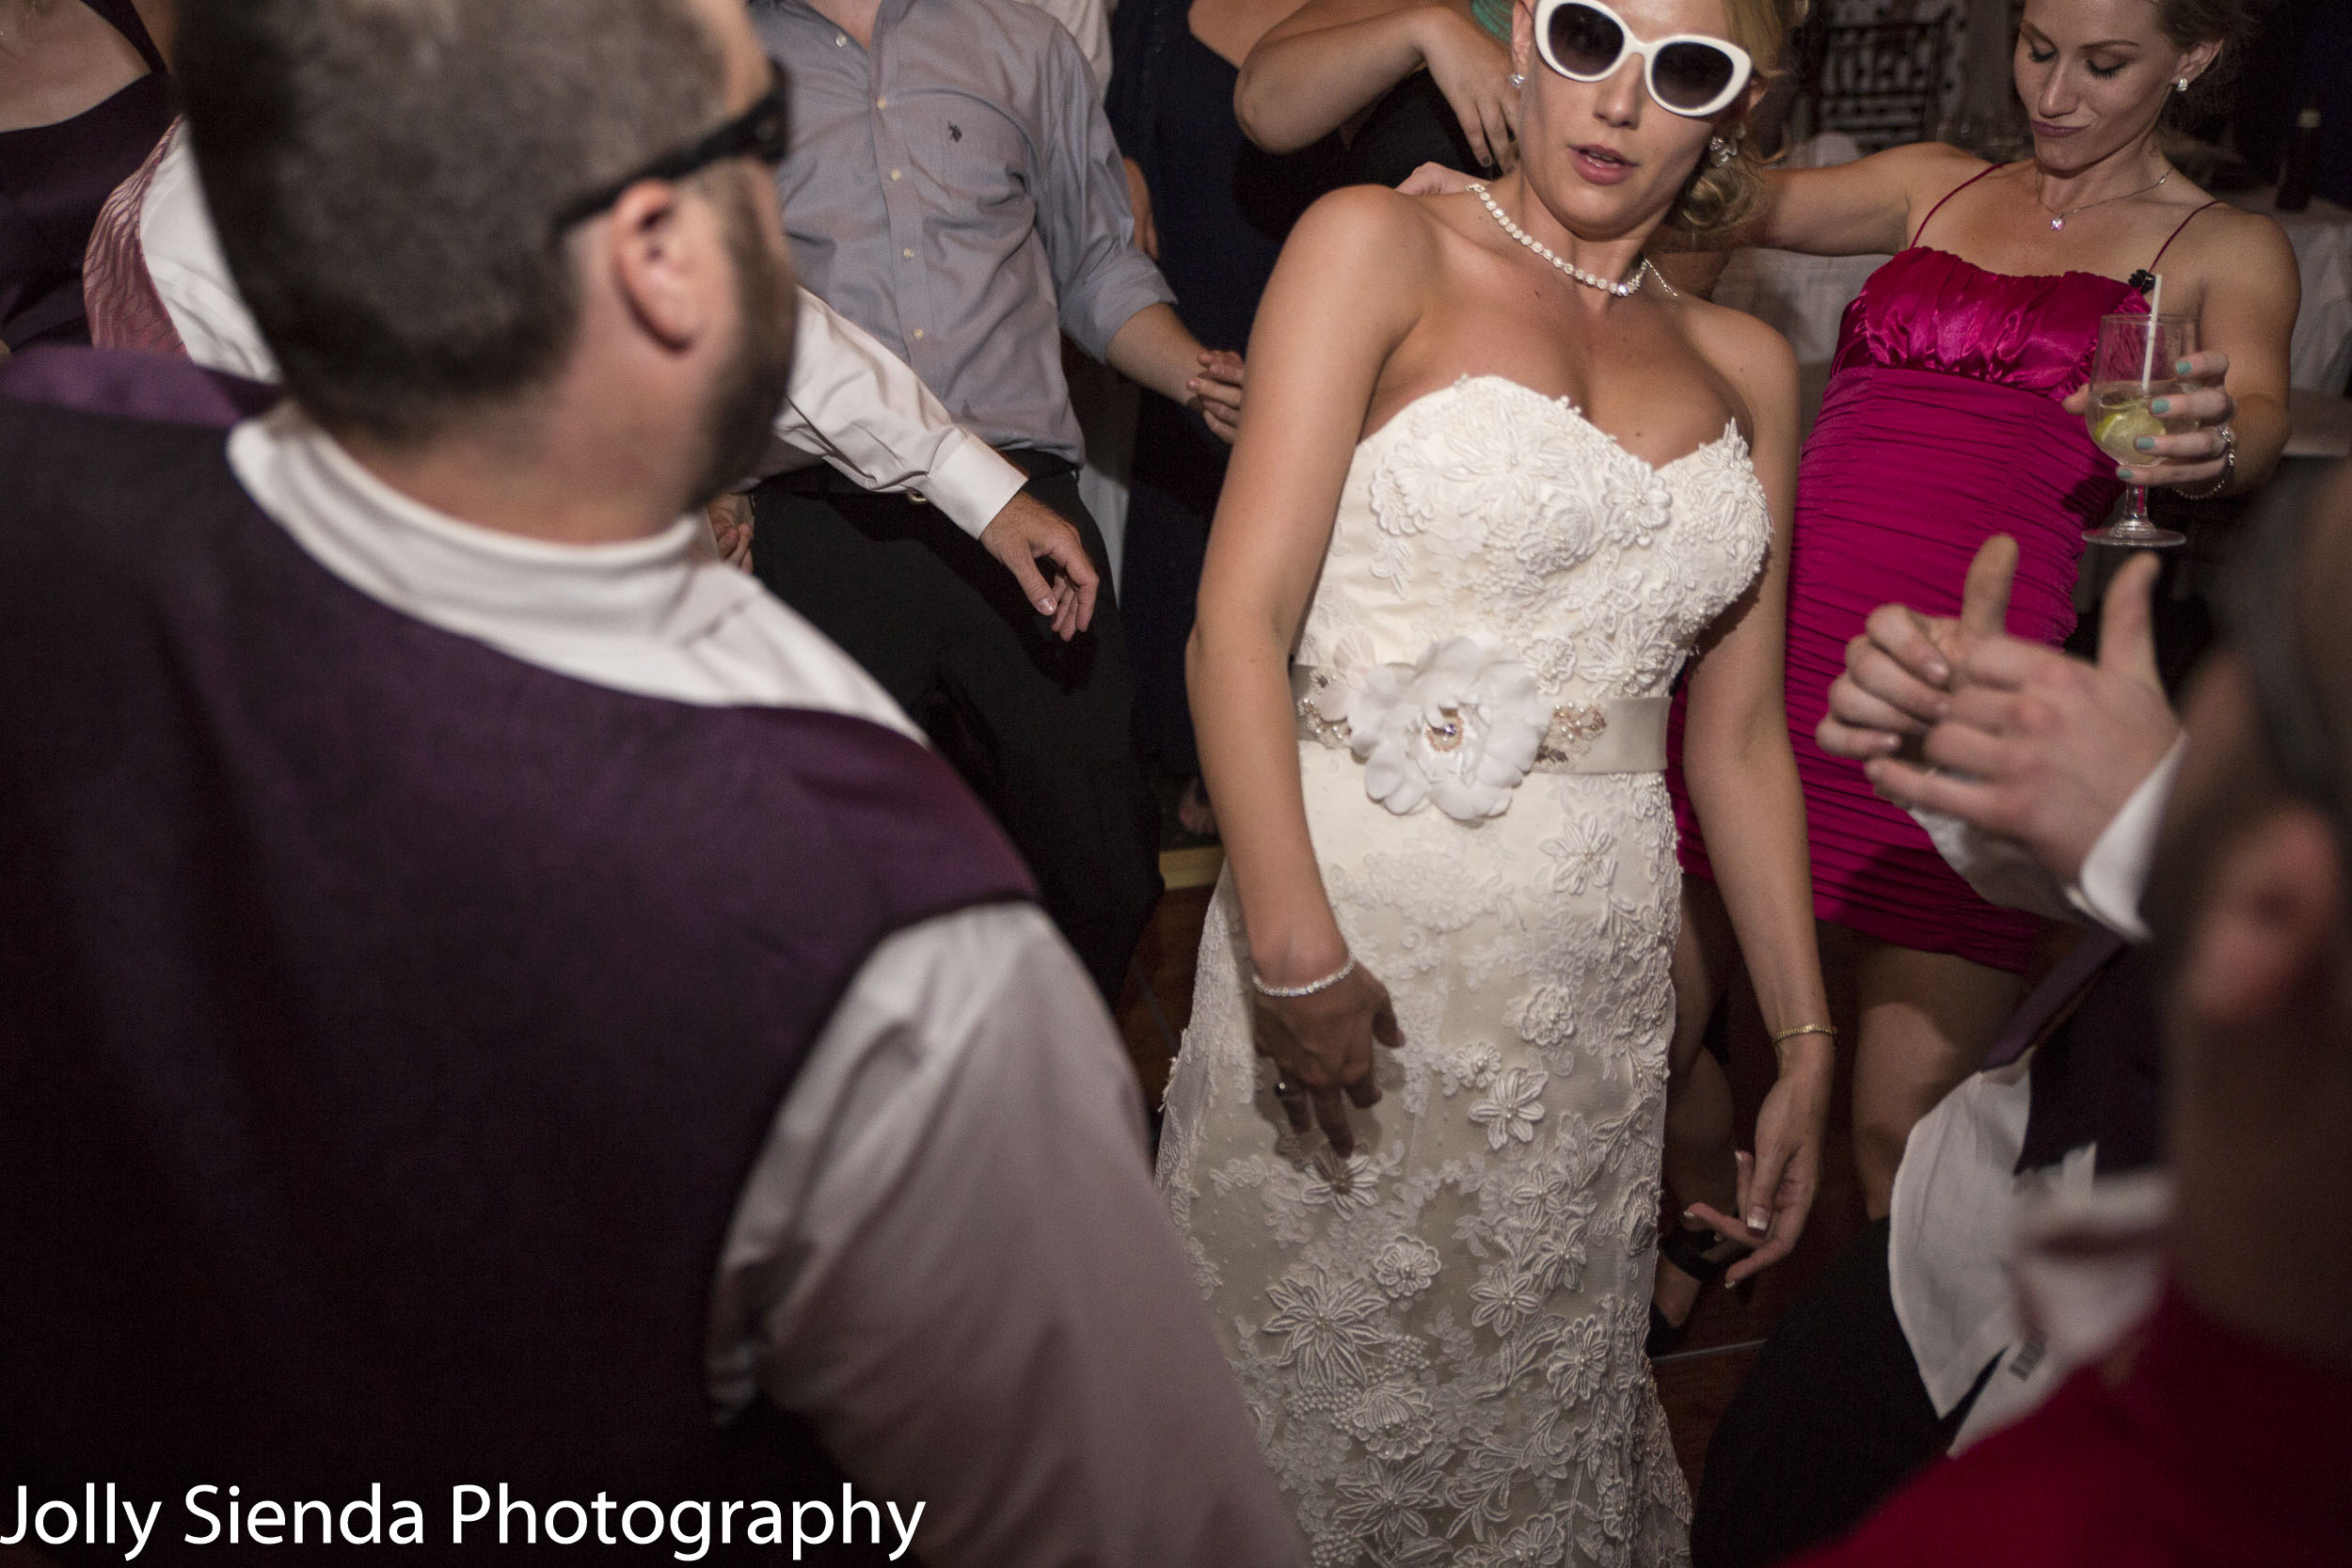 Wedding reception crazy portrait photography